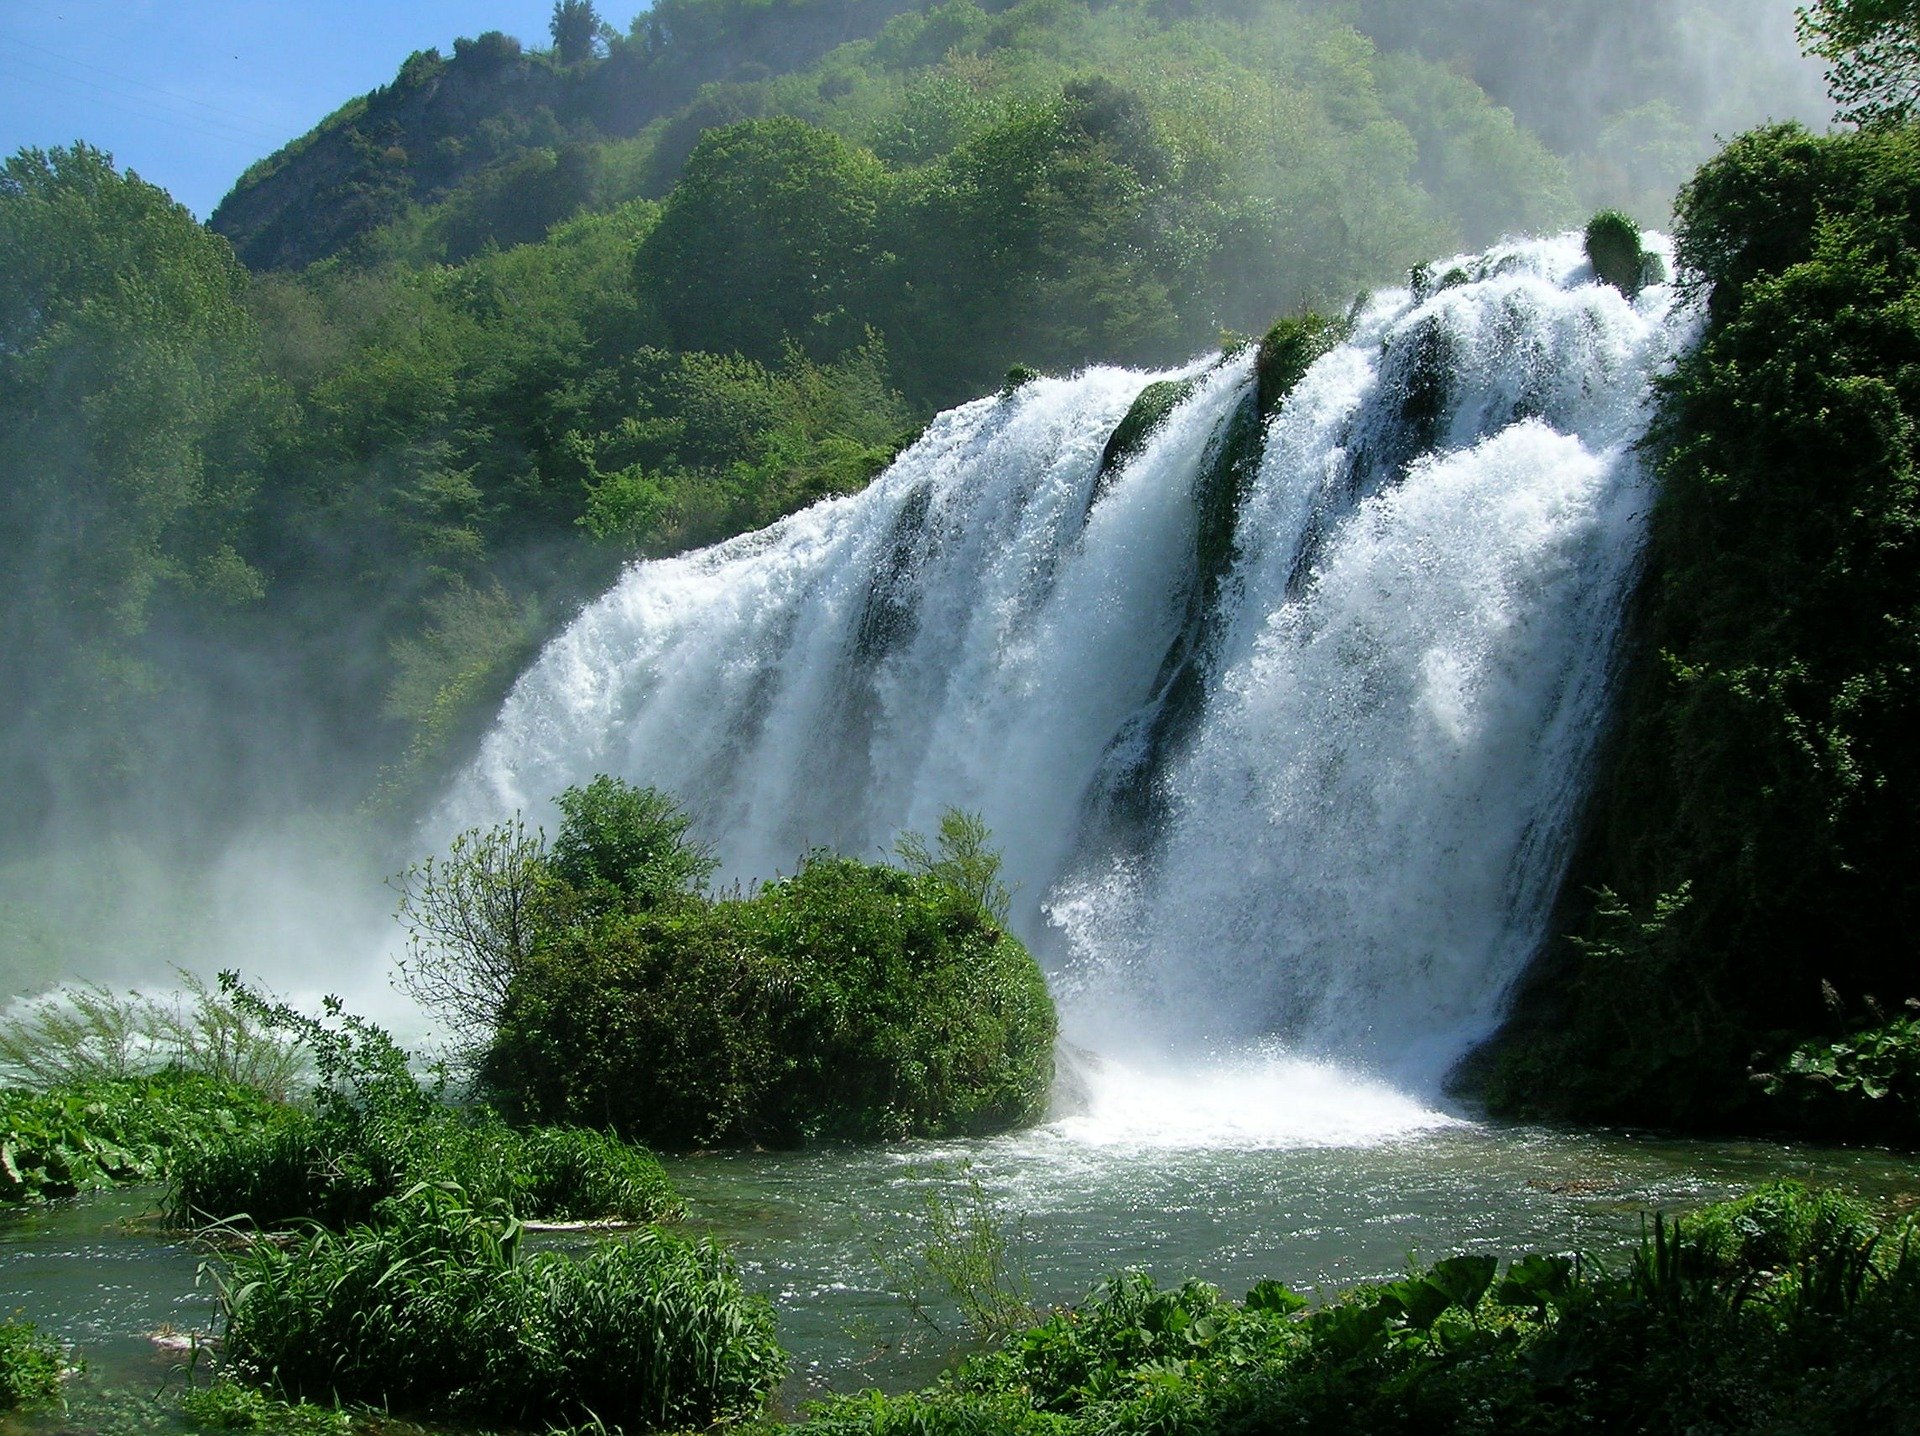 Maremore waterfalls, Umbria